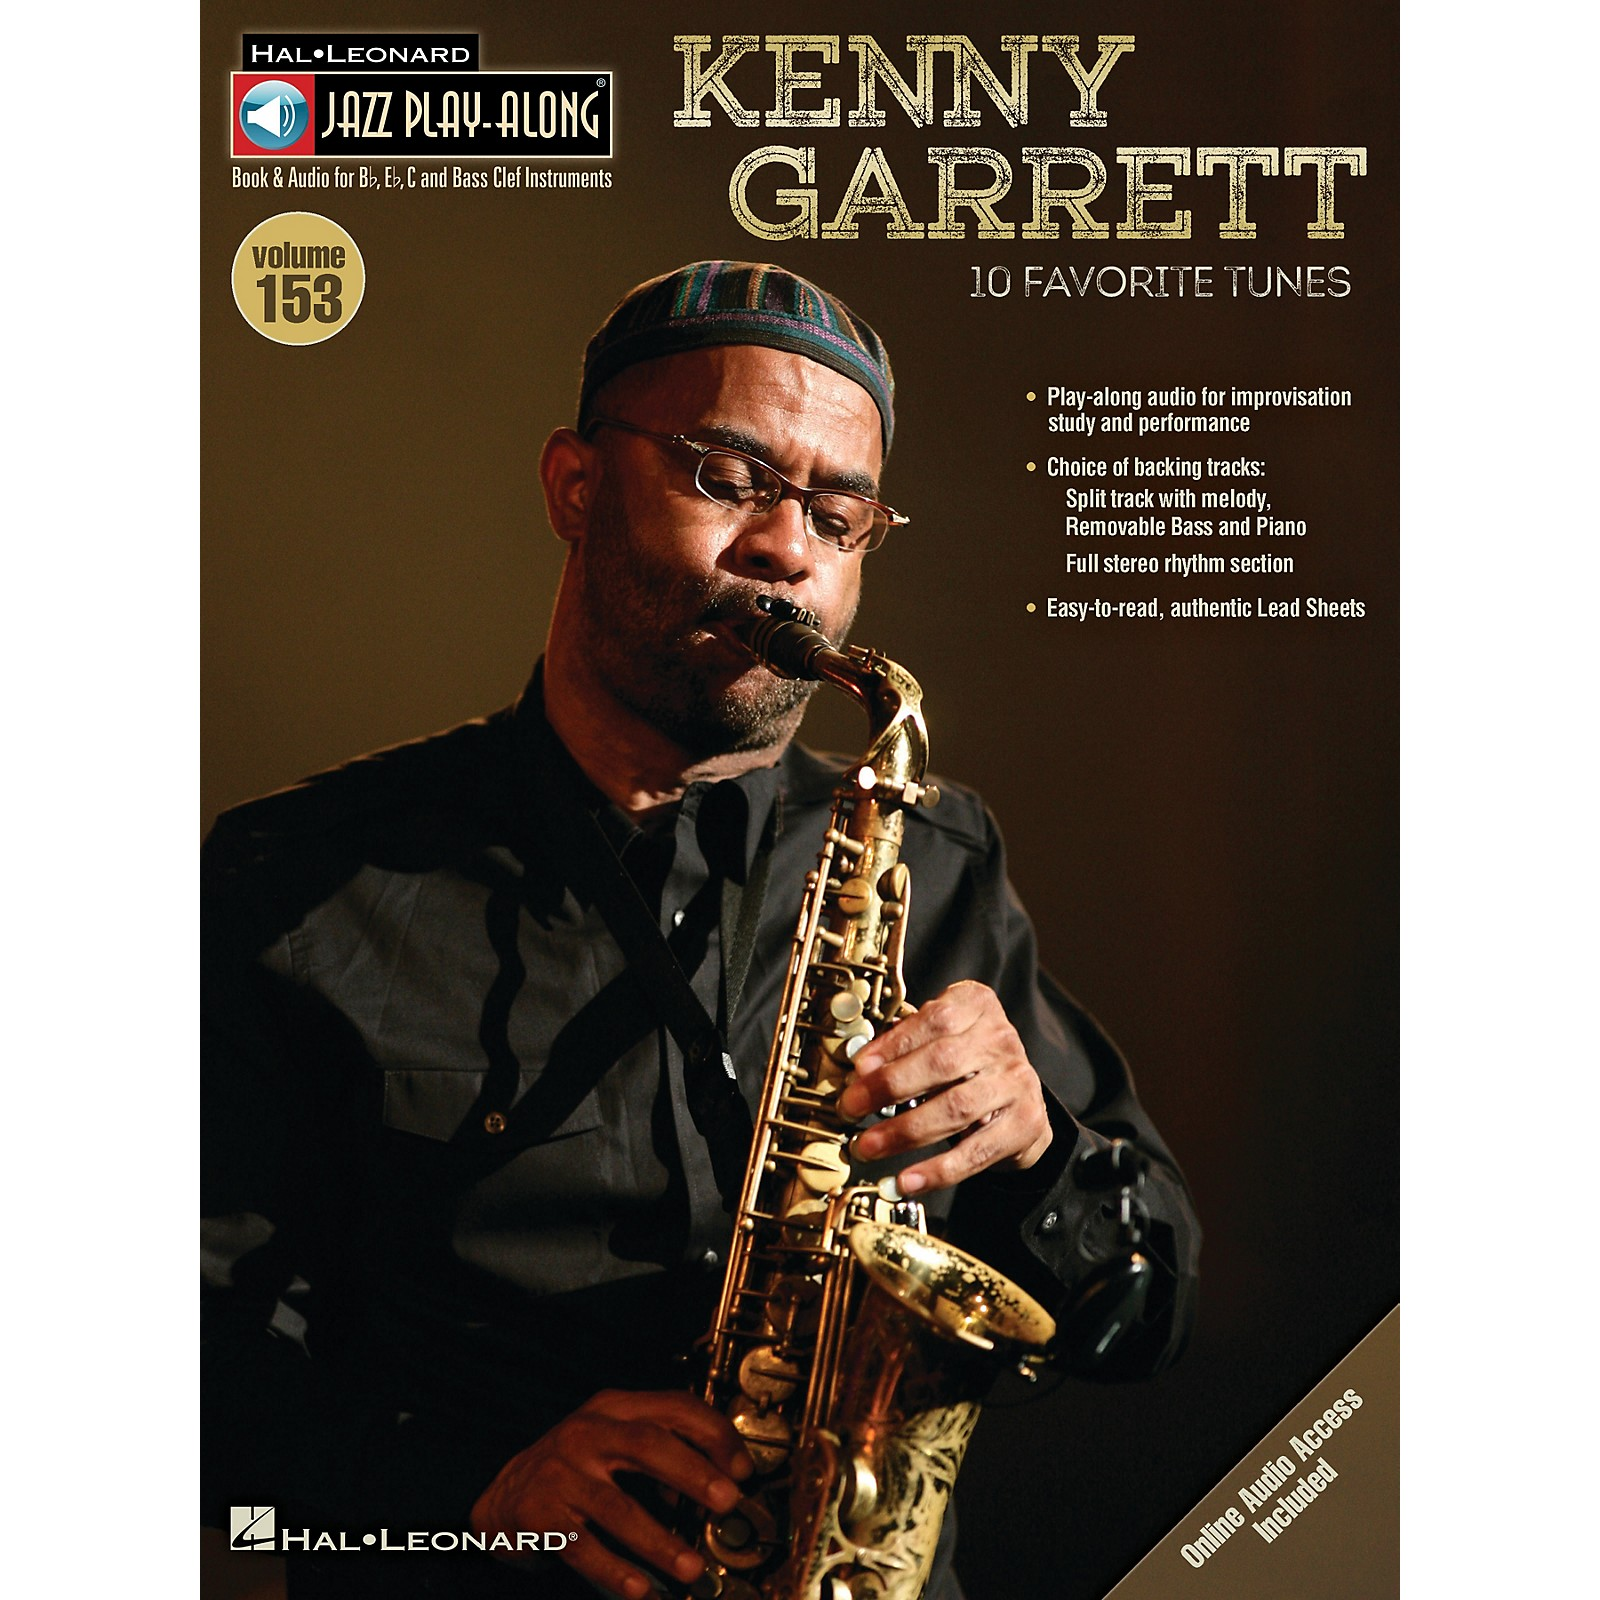 Hal Leonard Kenny Garrett (Jazz Play-Along Volume 153) Jazz Play Along Series Softcover Audio Online by Kenny Garrett